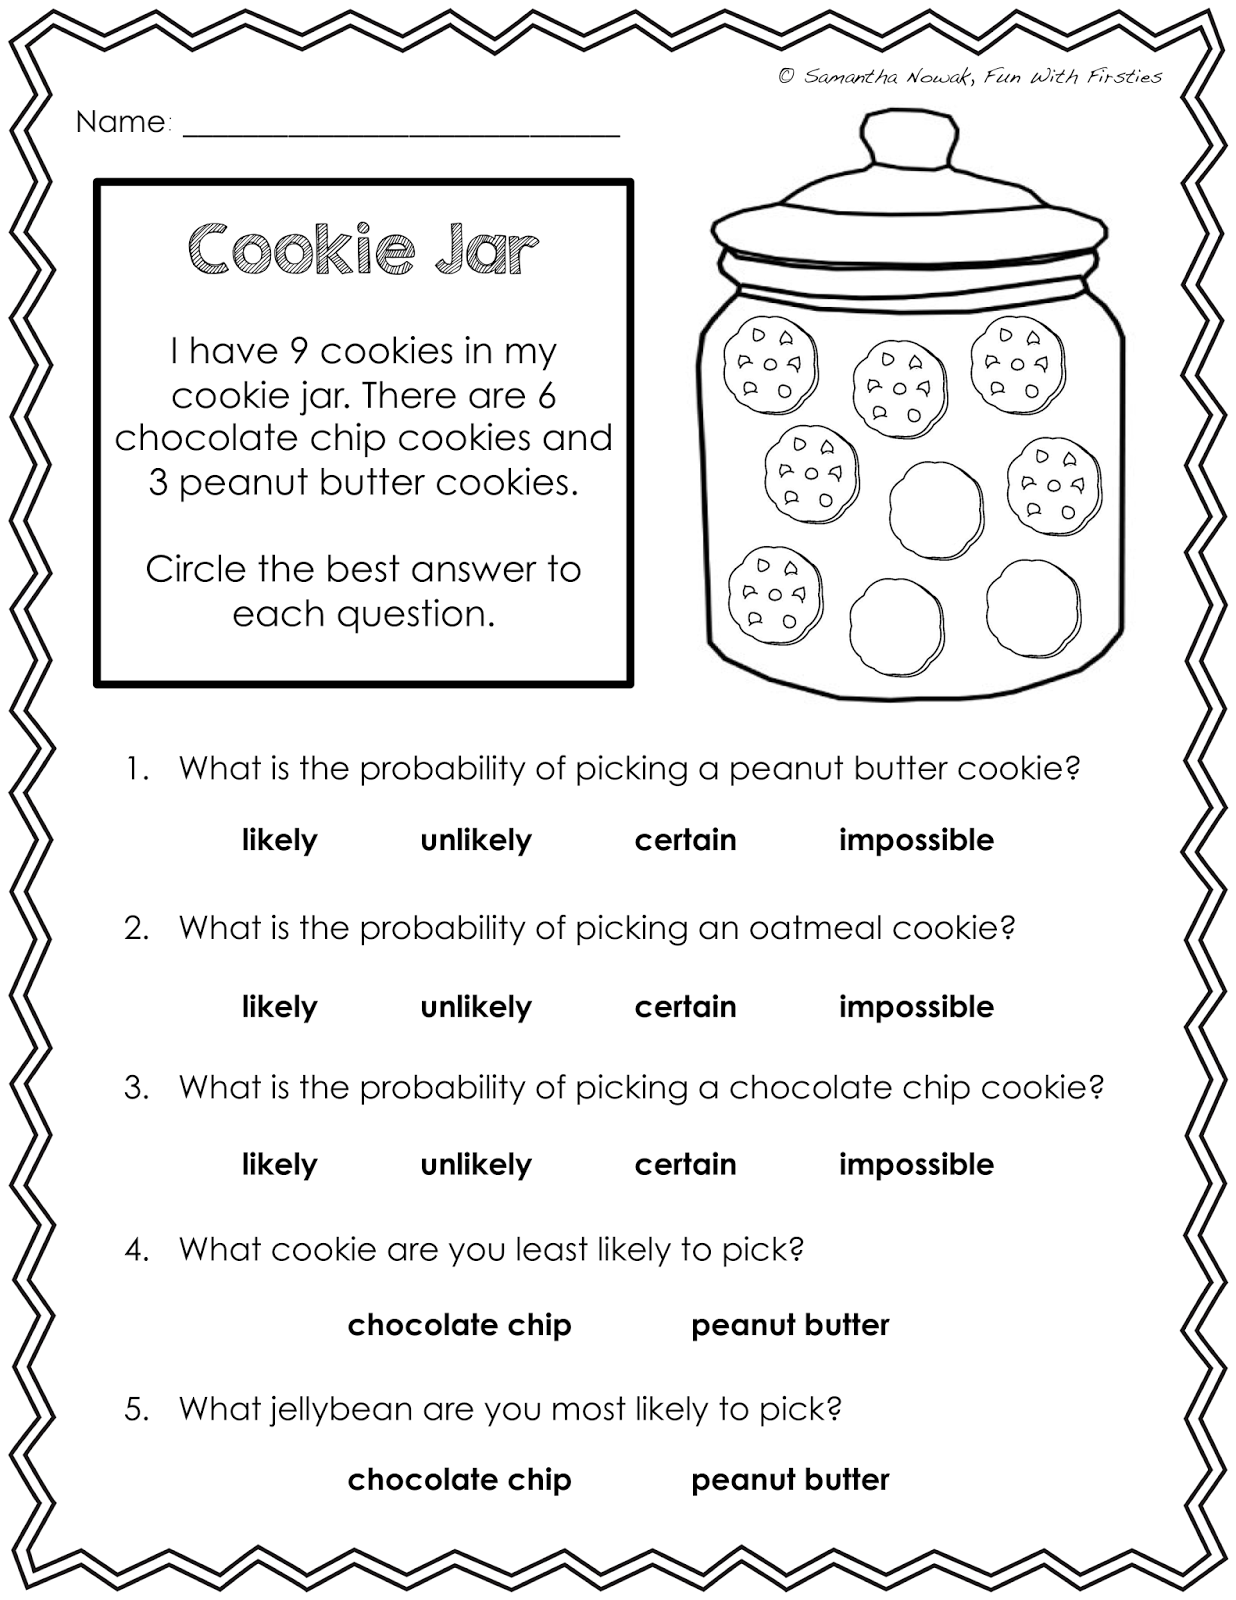 Gallery For u0026gt; Probability Spinner Worksheet